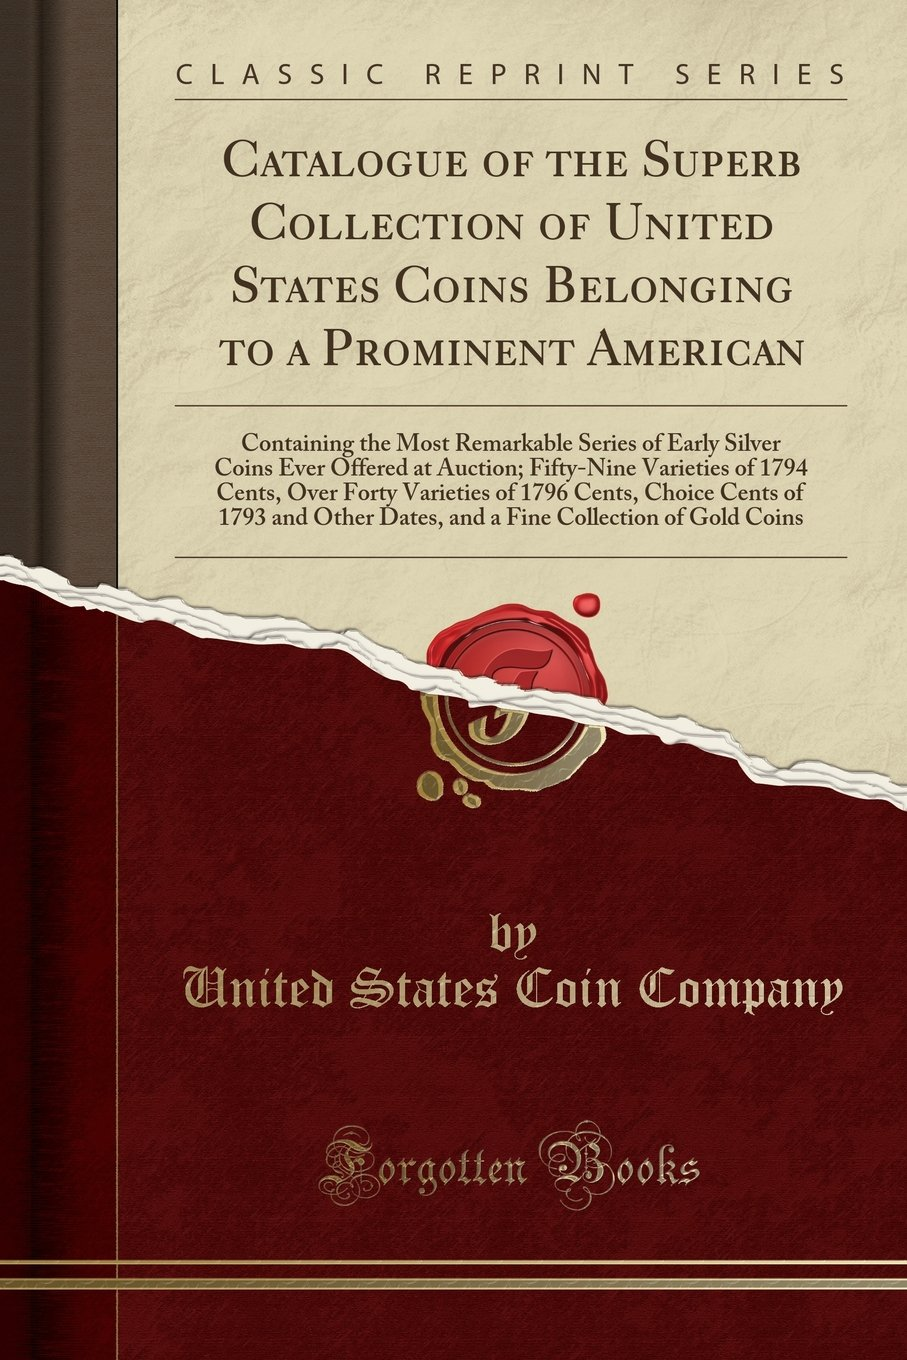 Download Catalogue of the Superb Collection of United States Coins Belonging to a Prominent American: Containing the Most Remarkable Series of Early Silver ... Over Forty Varieties of 1796 Cents, Choic PDF